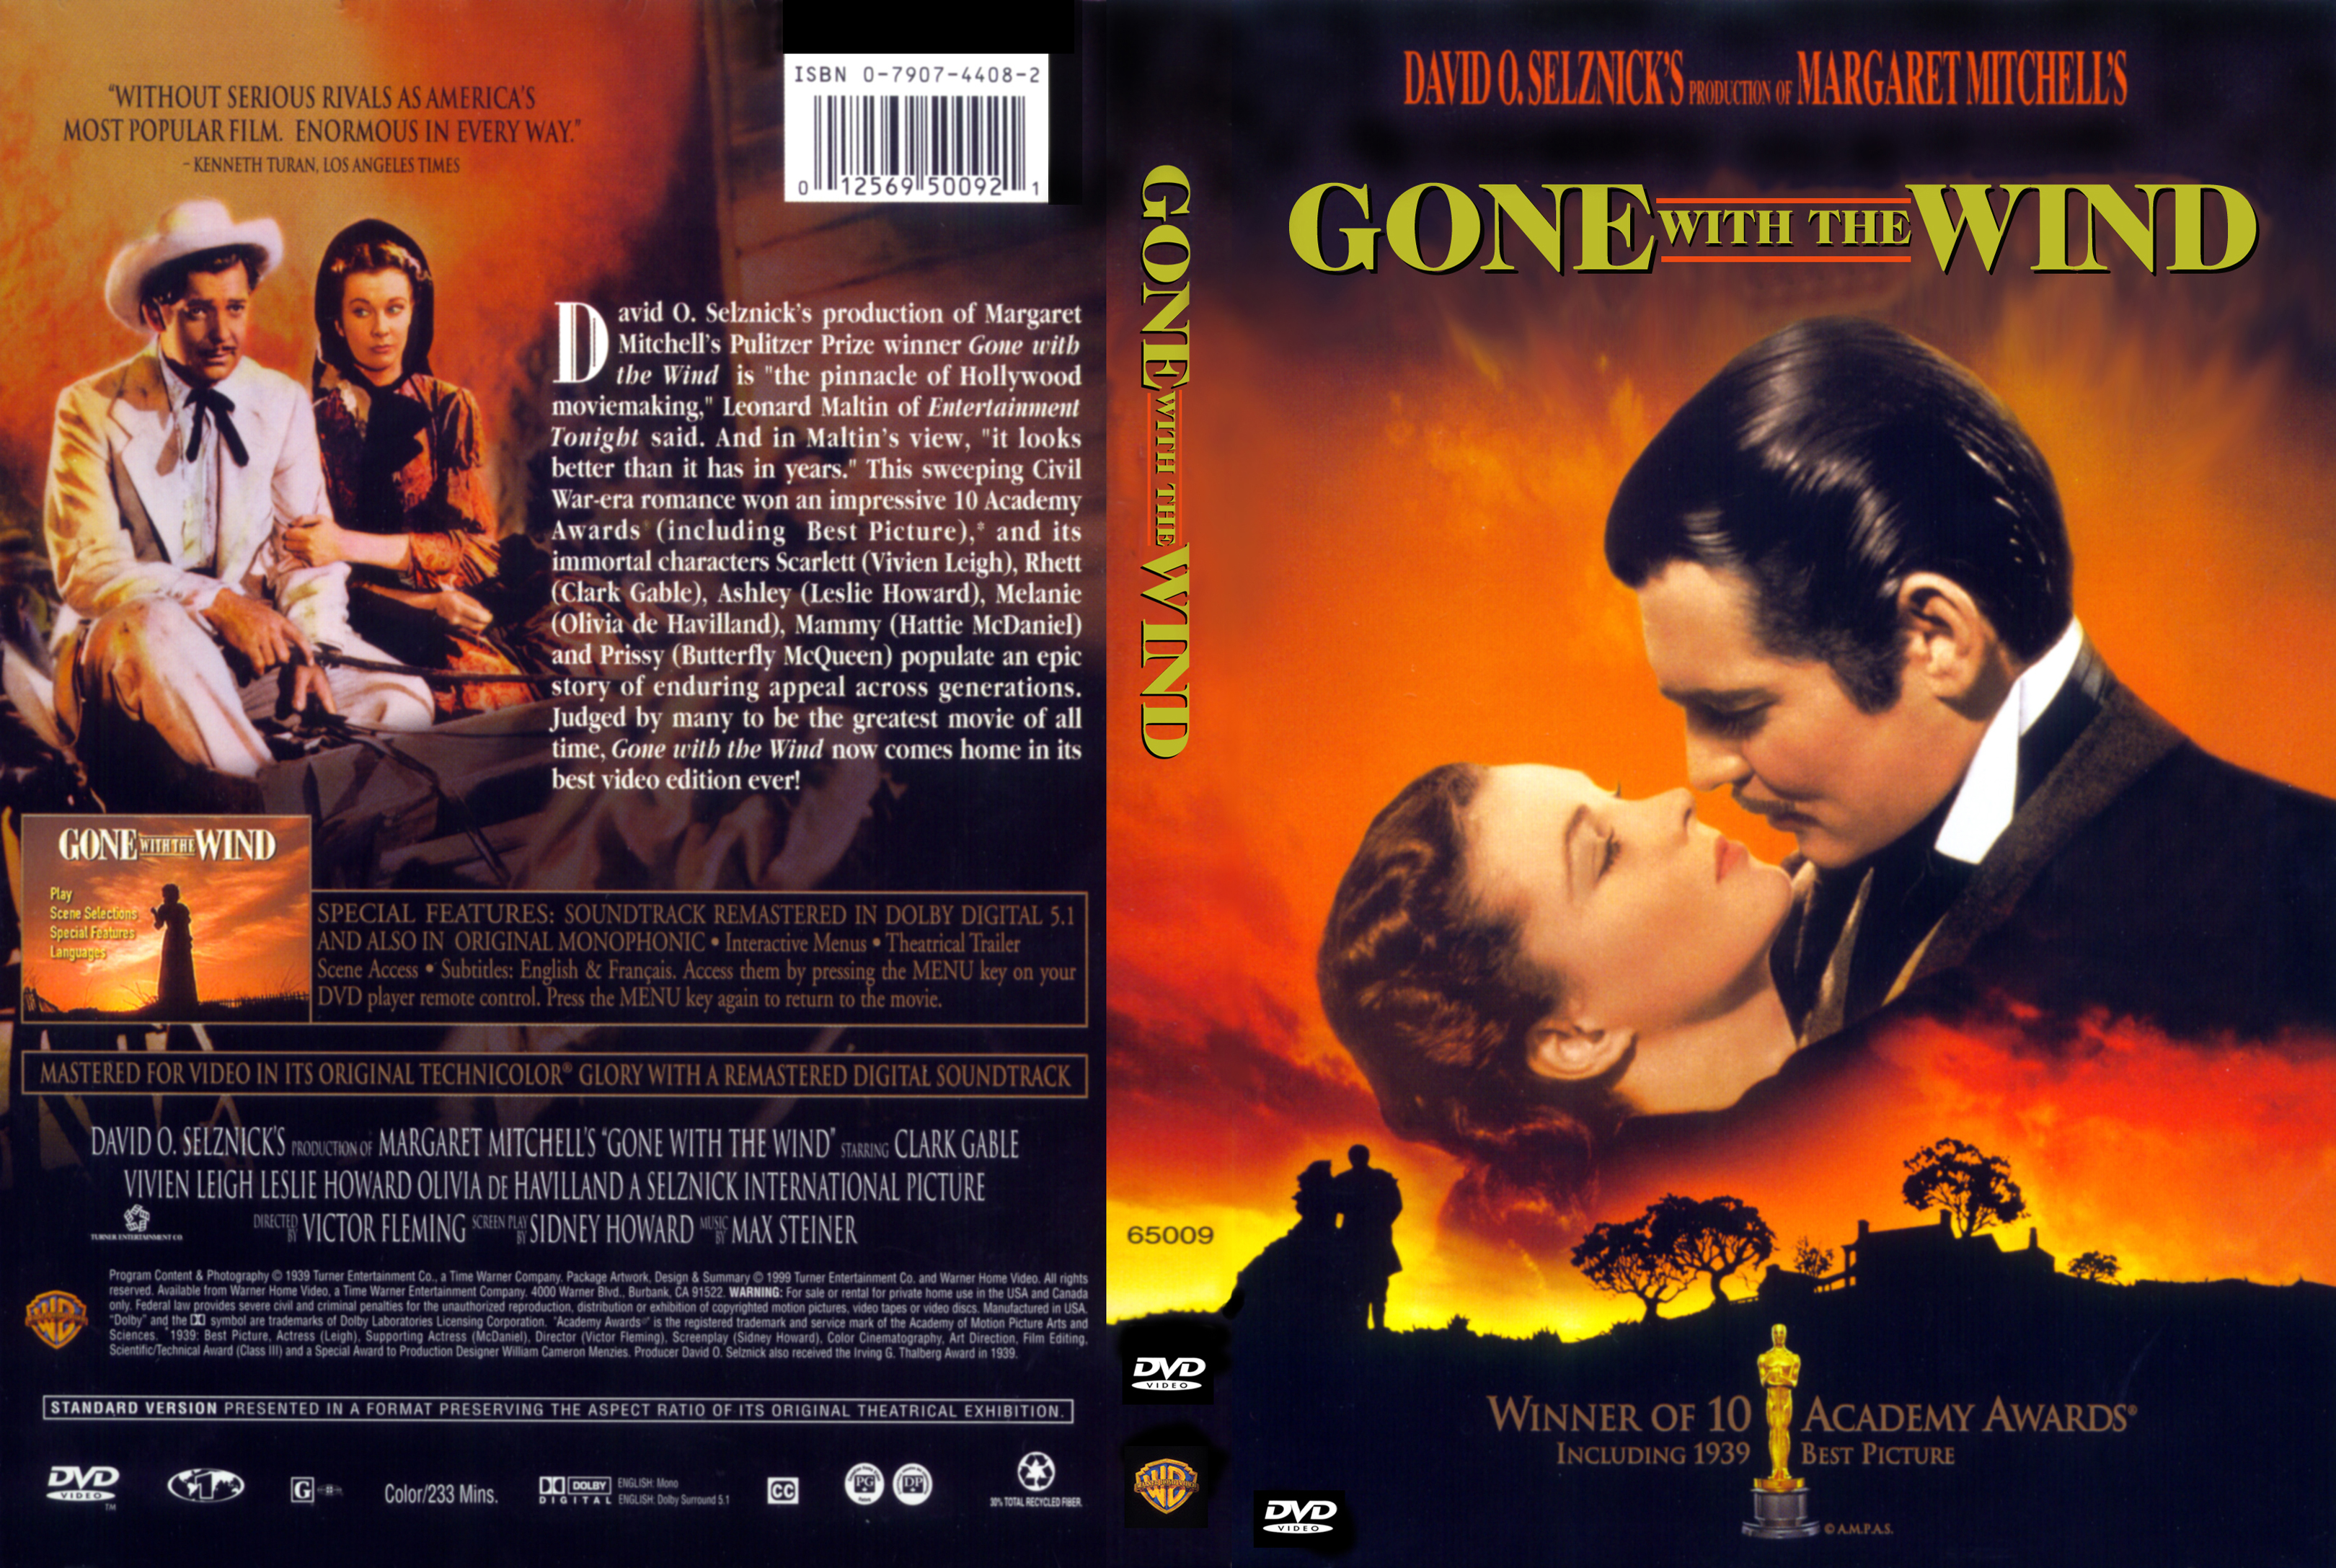 Gone with the Wind Margaret Mitchell Pat Conroy